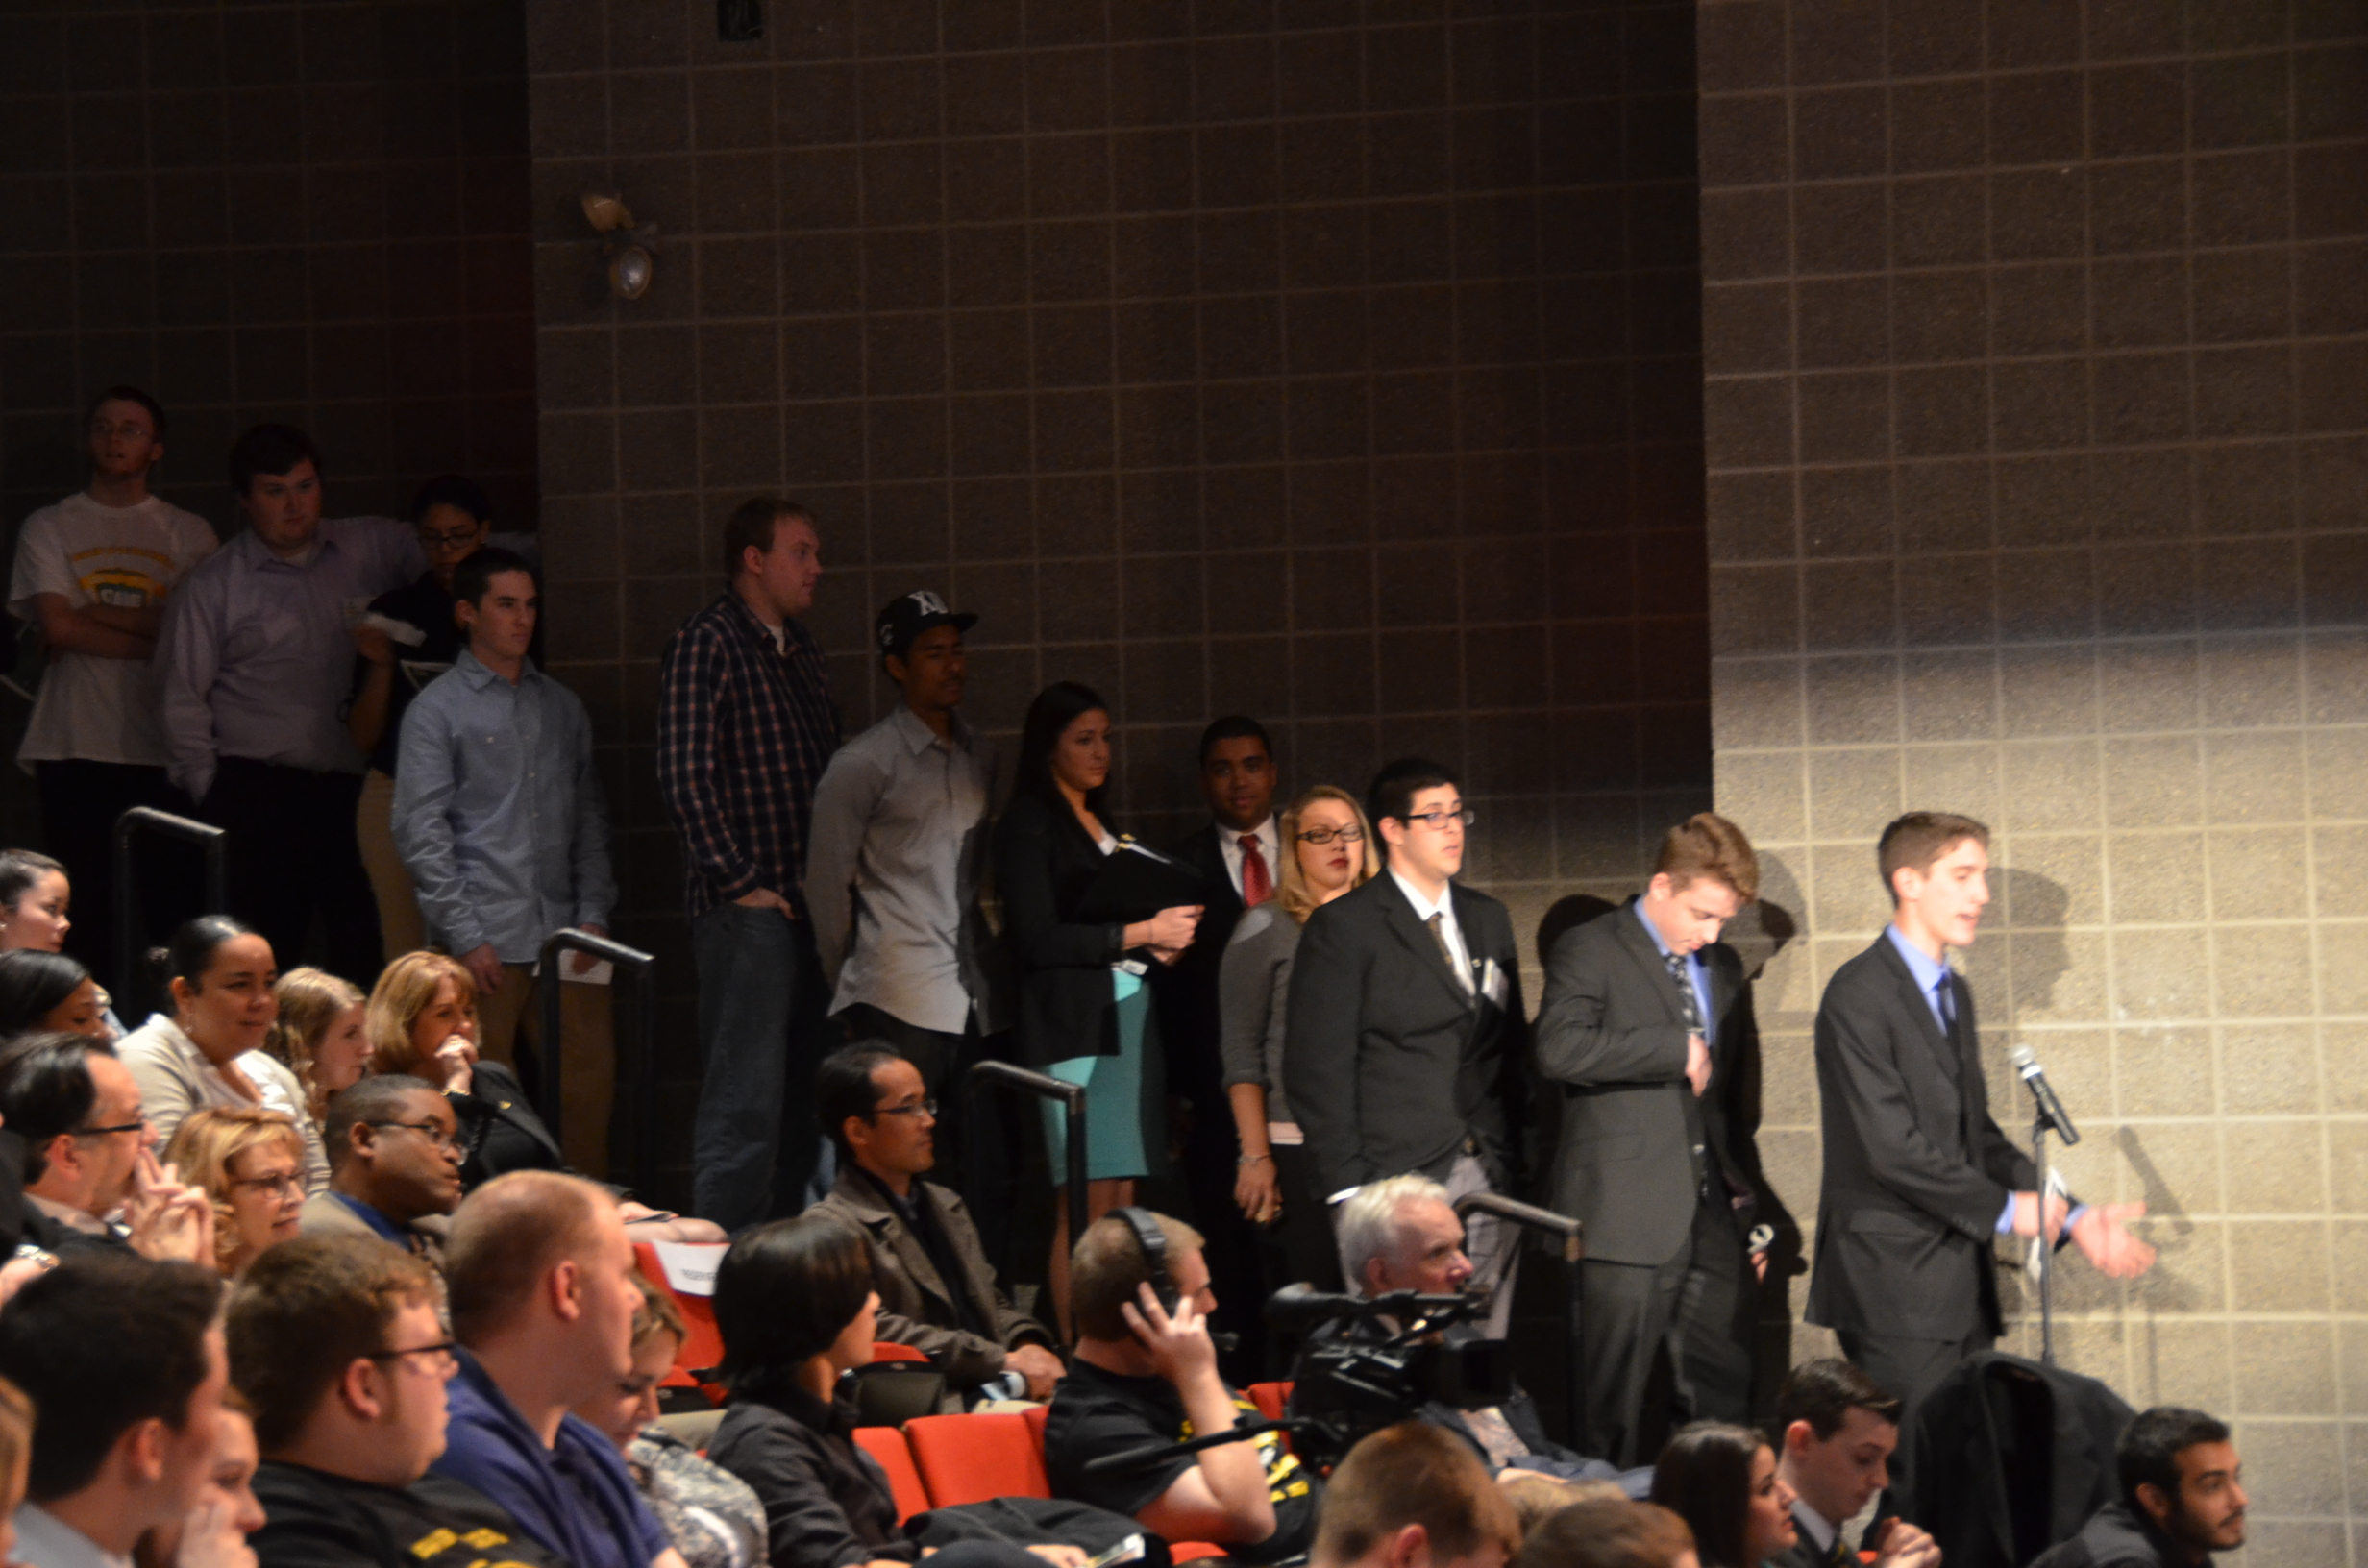 Students line up to ask the panel question about sports media. (Patrick Malowski | The Oswegonian)